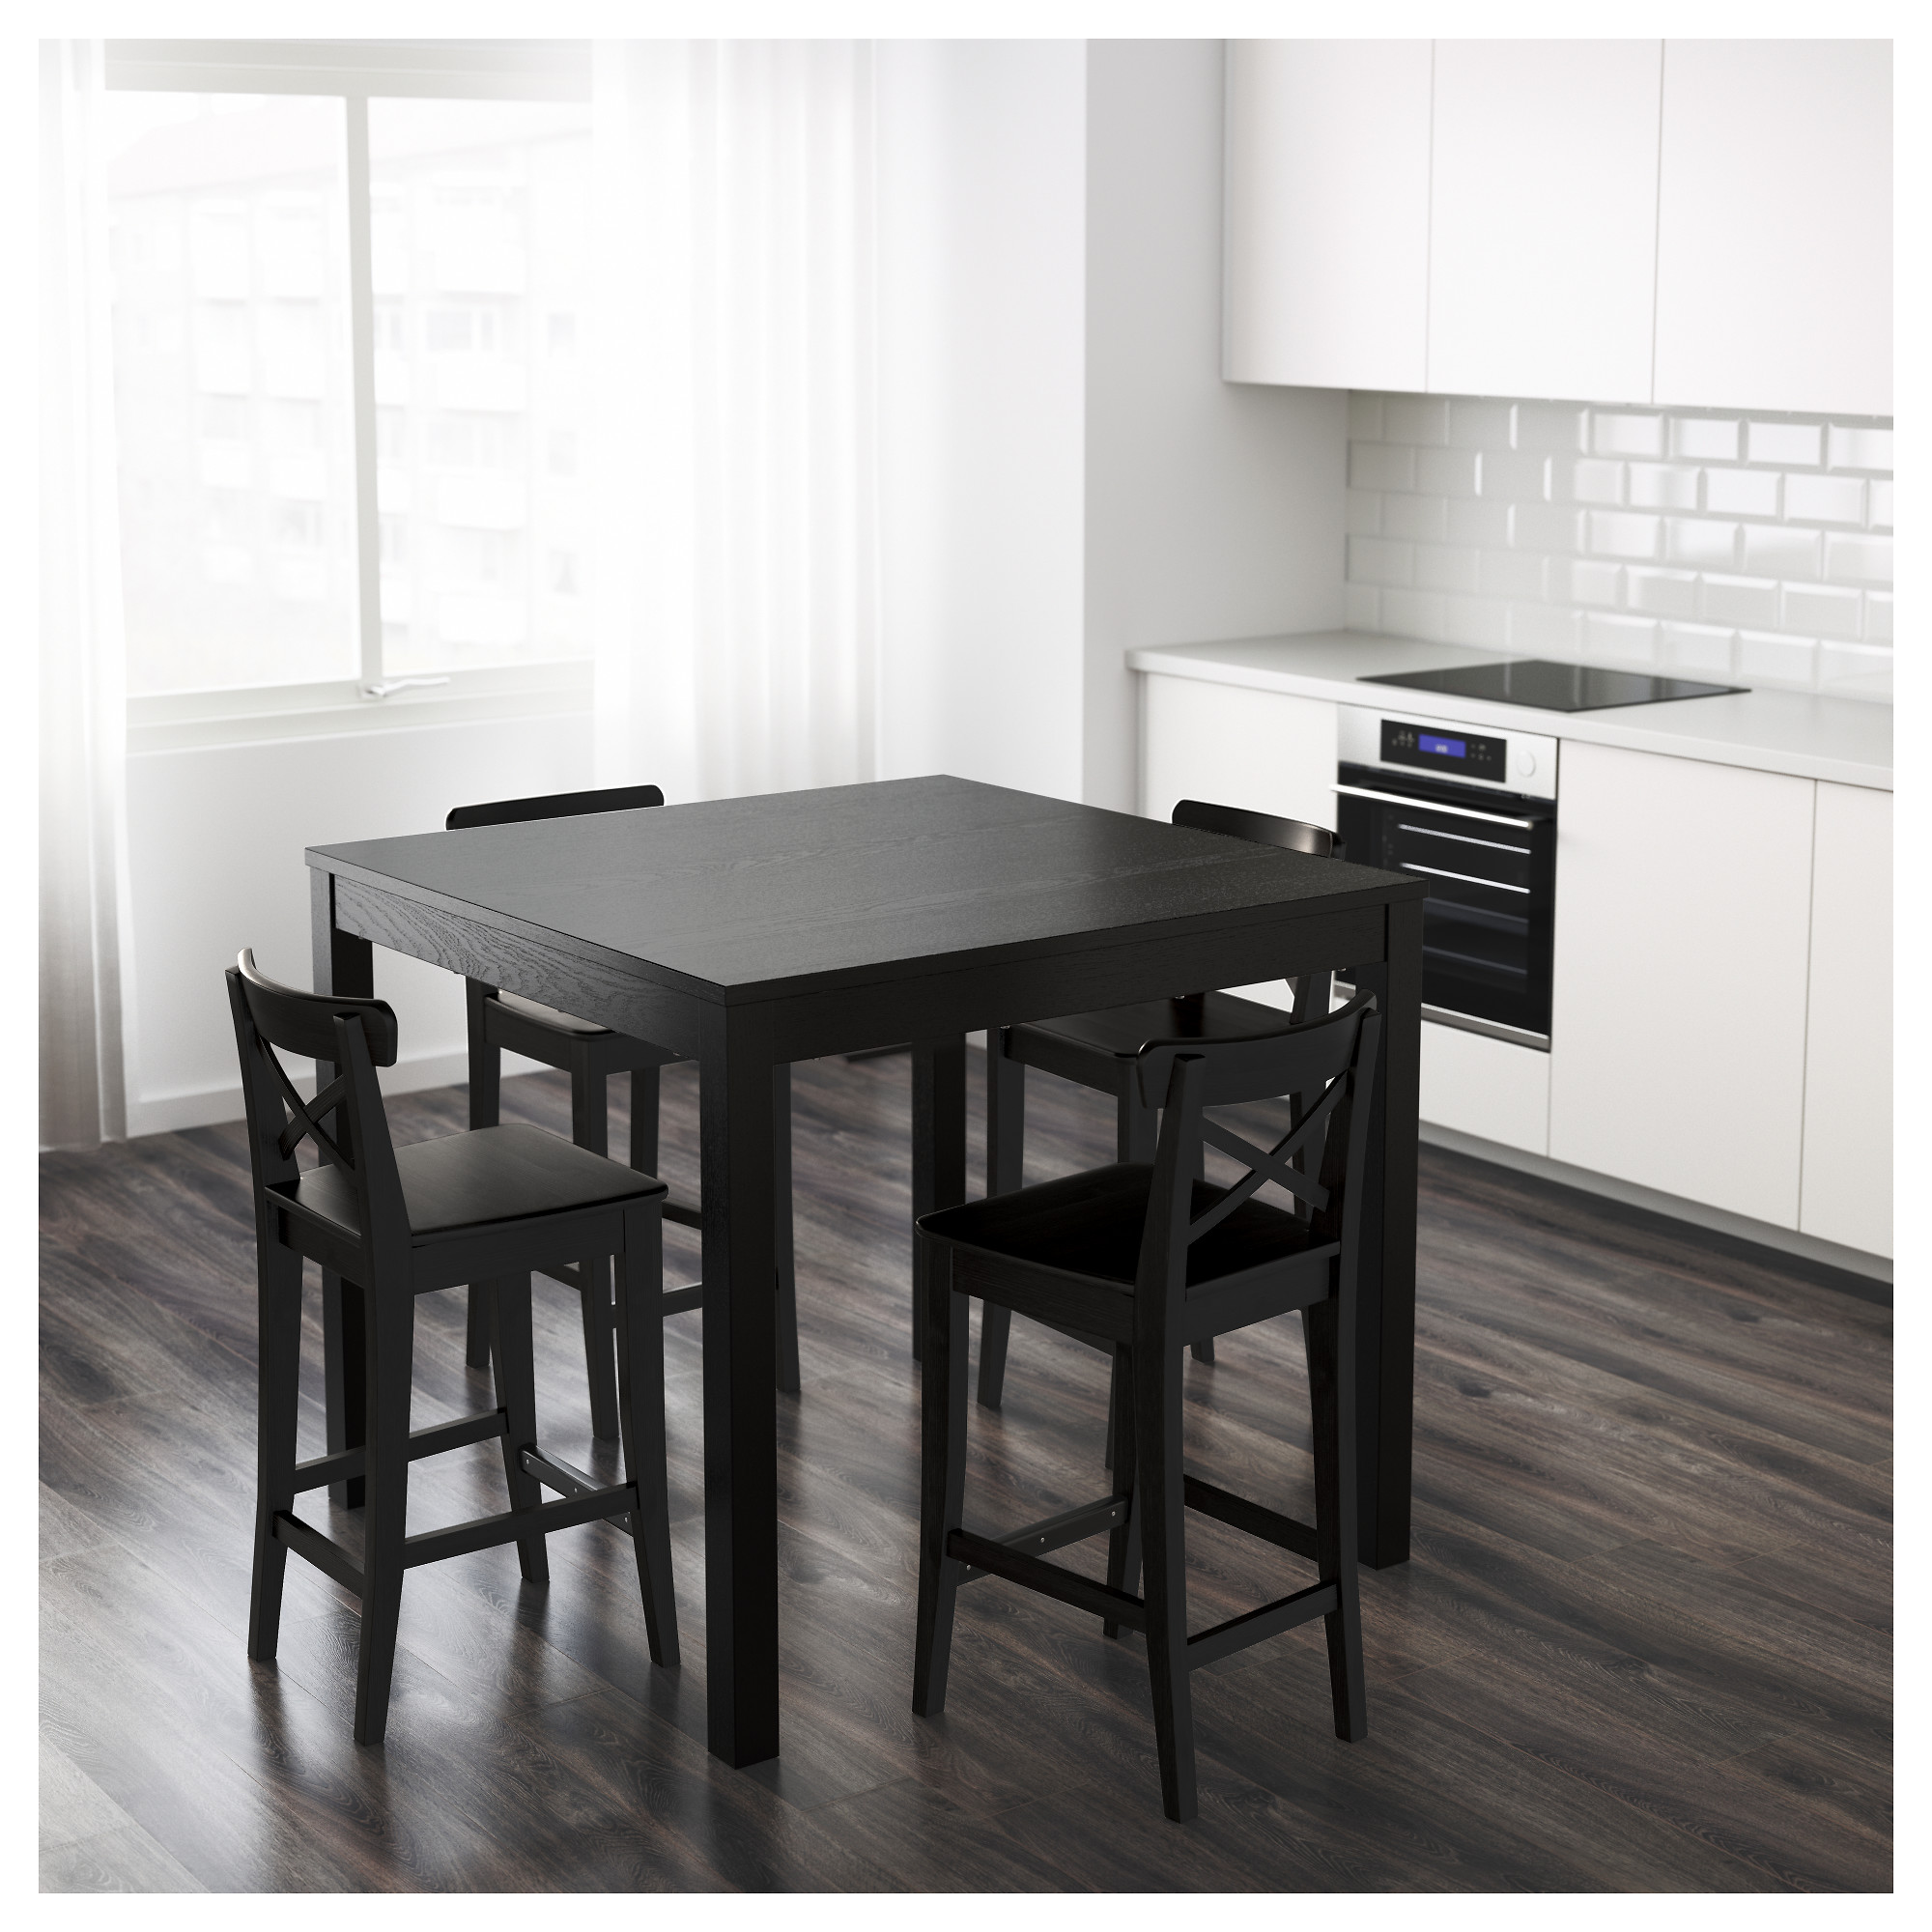 table haute mange debout ikea fabulous une table de salle. Black Bedroom Furniture Sets. Home Design Ideas